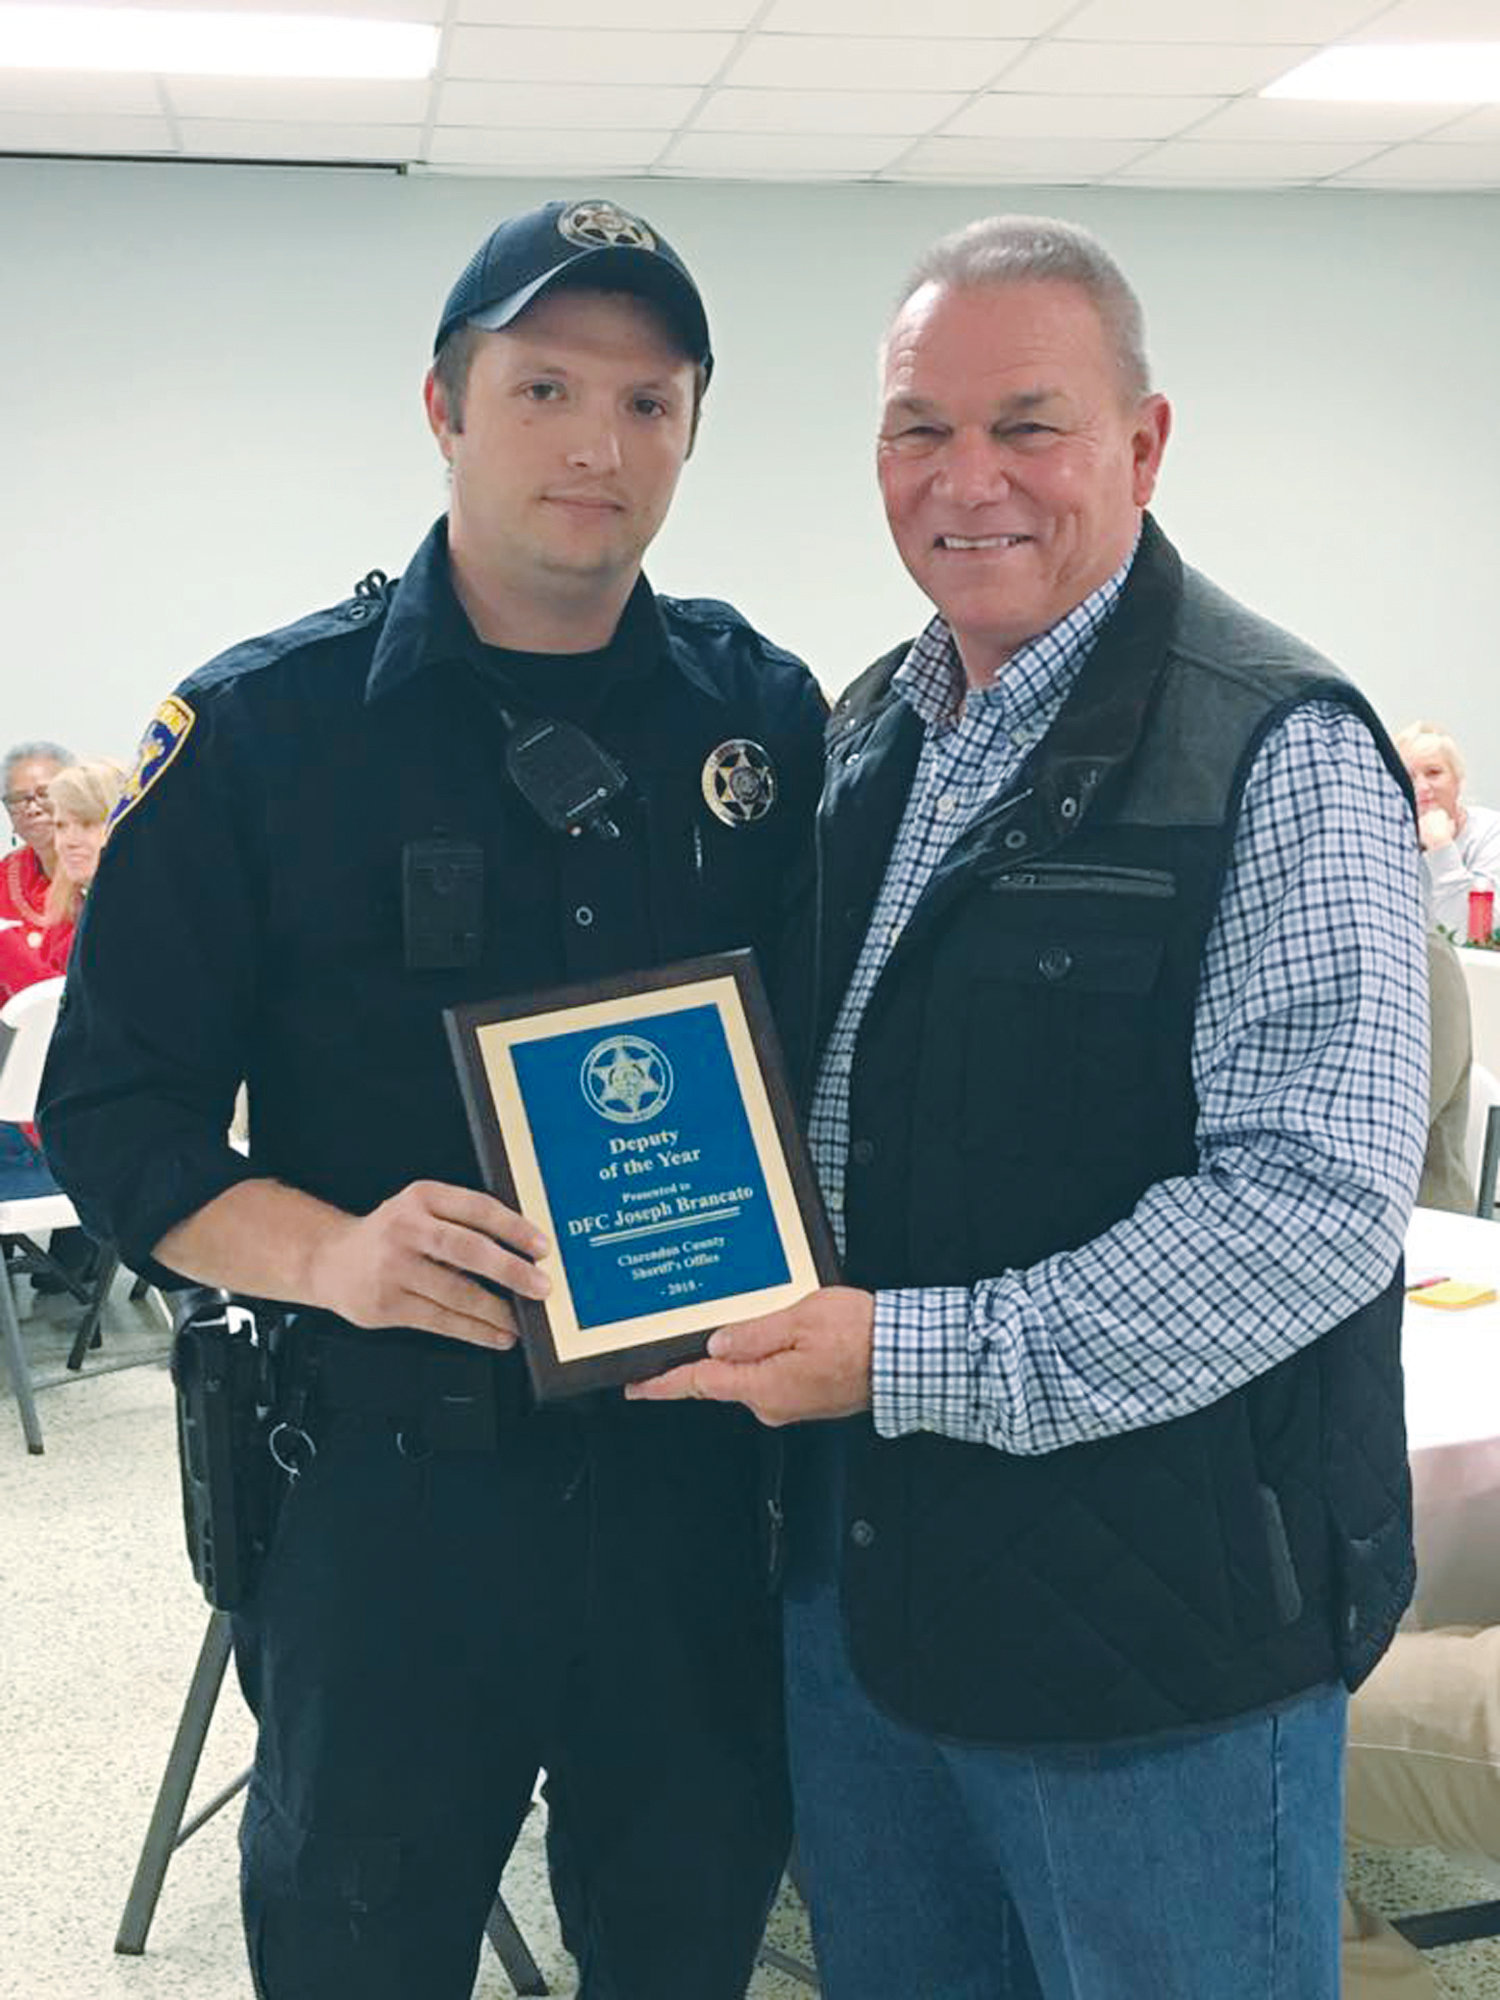 PHOTOS PROVIDED  Clarendon County Sheriff Tim Baxley, right, named Deputy Joseph Brancato as the 2018 Deputy of the Year on Dec. 20.